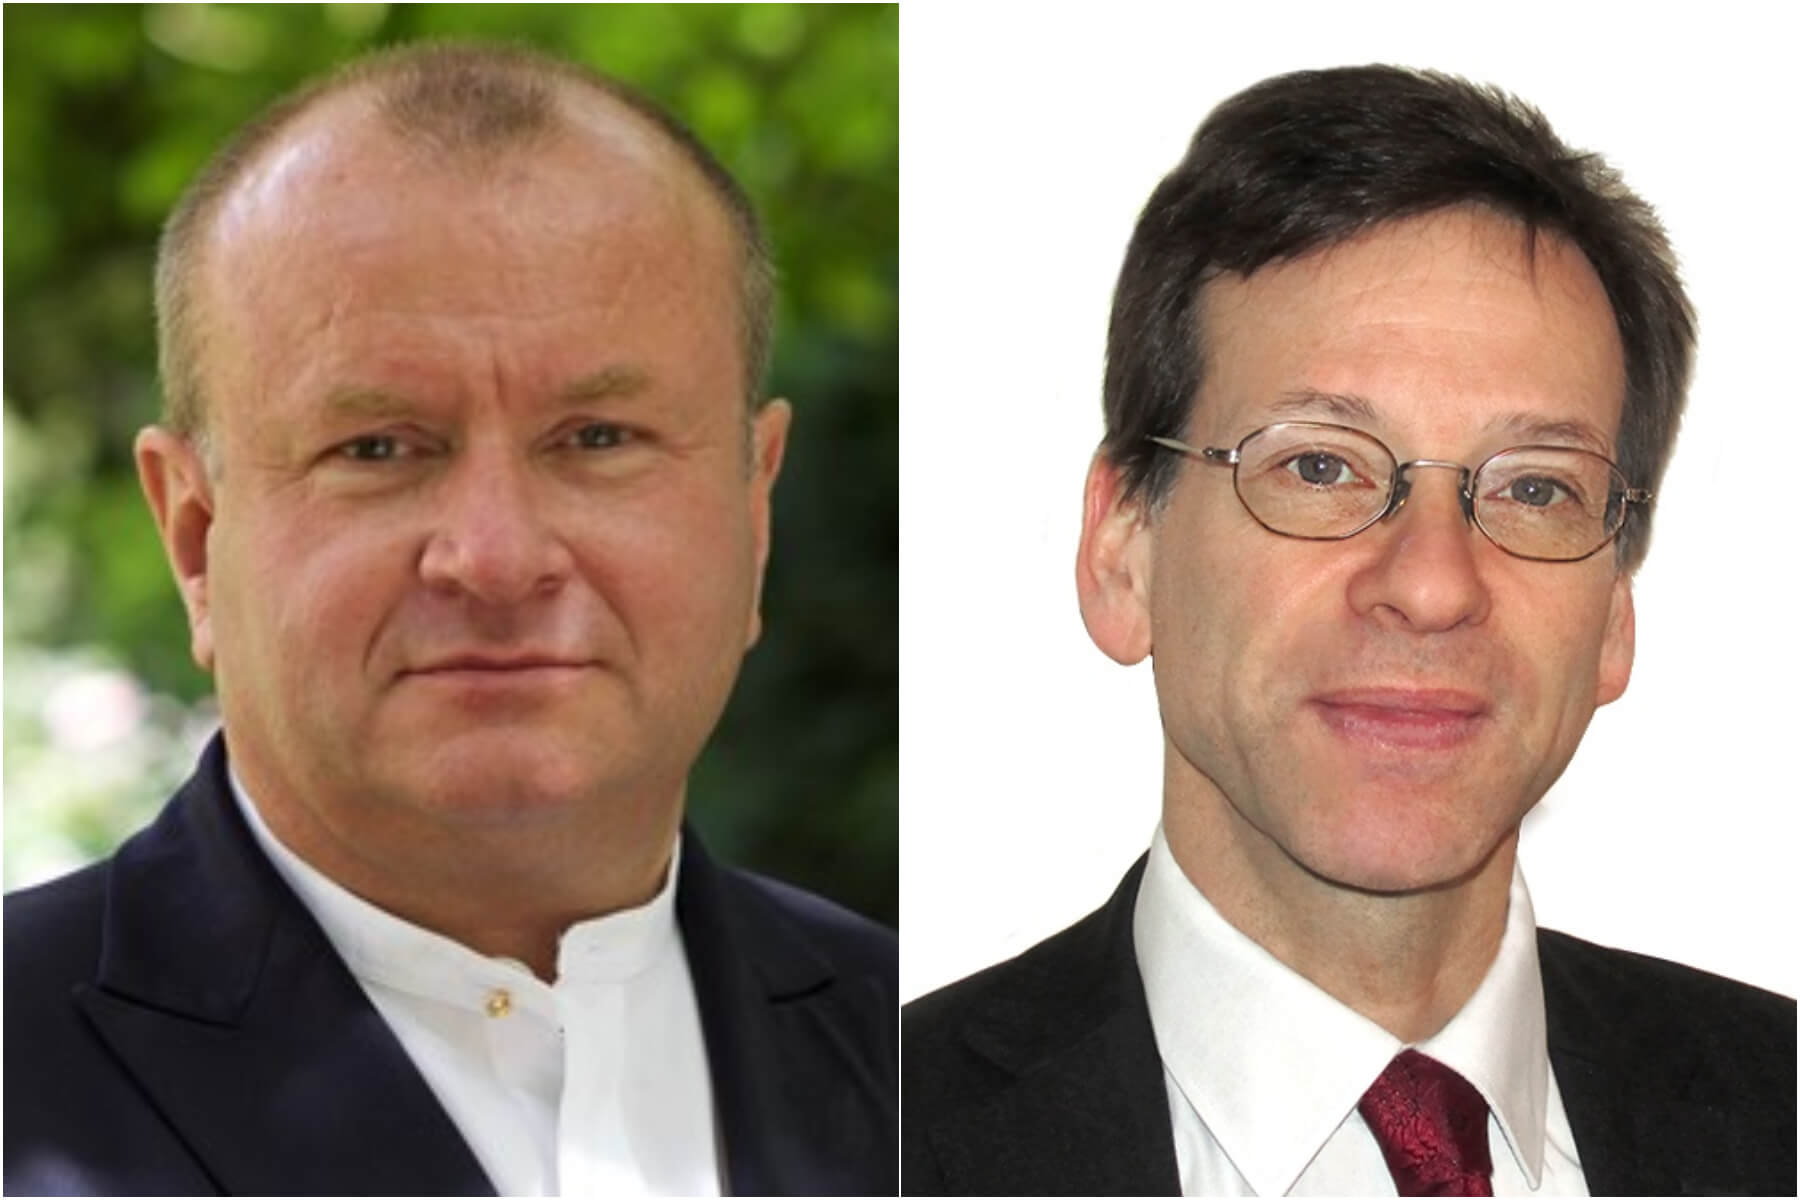 David Allen QC and John Bignall win in the Commercial Court for IMS S.A. and others v. Capital Oil and Gas Industries Ltd.